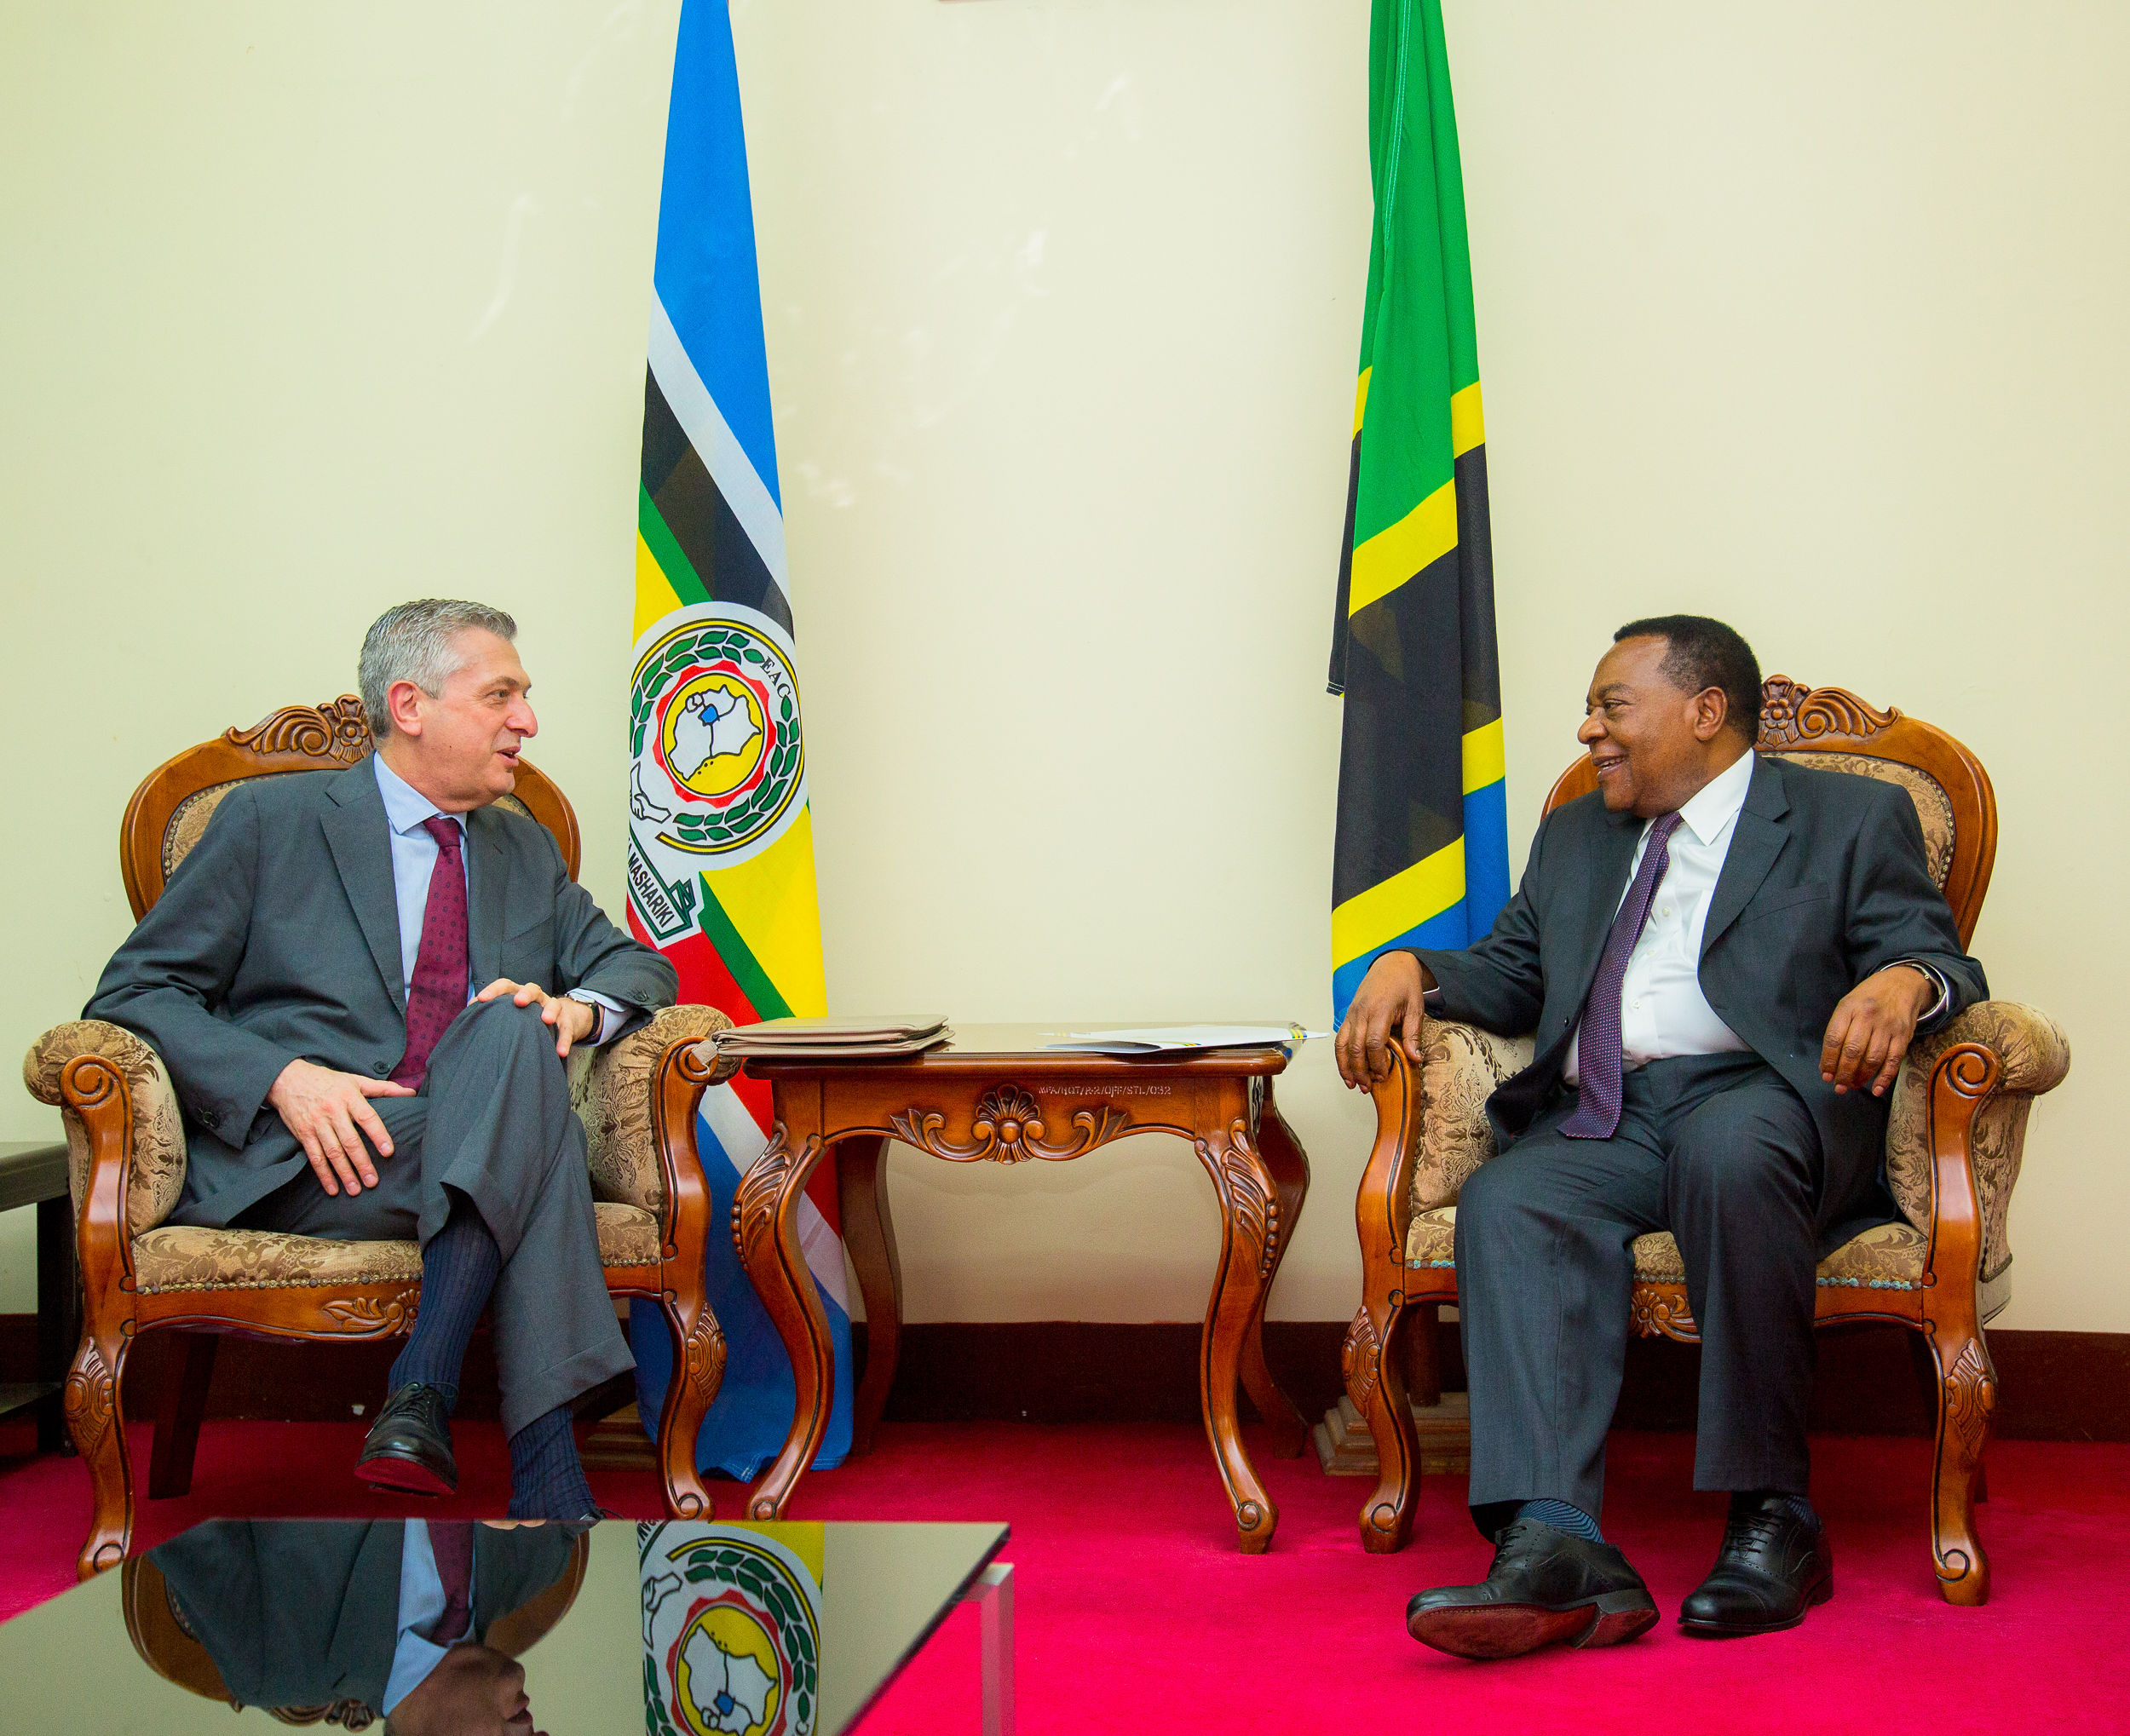 The High Commissioner of UNHCR Mr. Filippo Grandi (left) having a discussion with the Minister of Justice and Constitutional Affairs Hon. Augustine Mahiga (right).